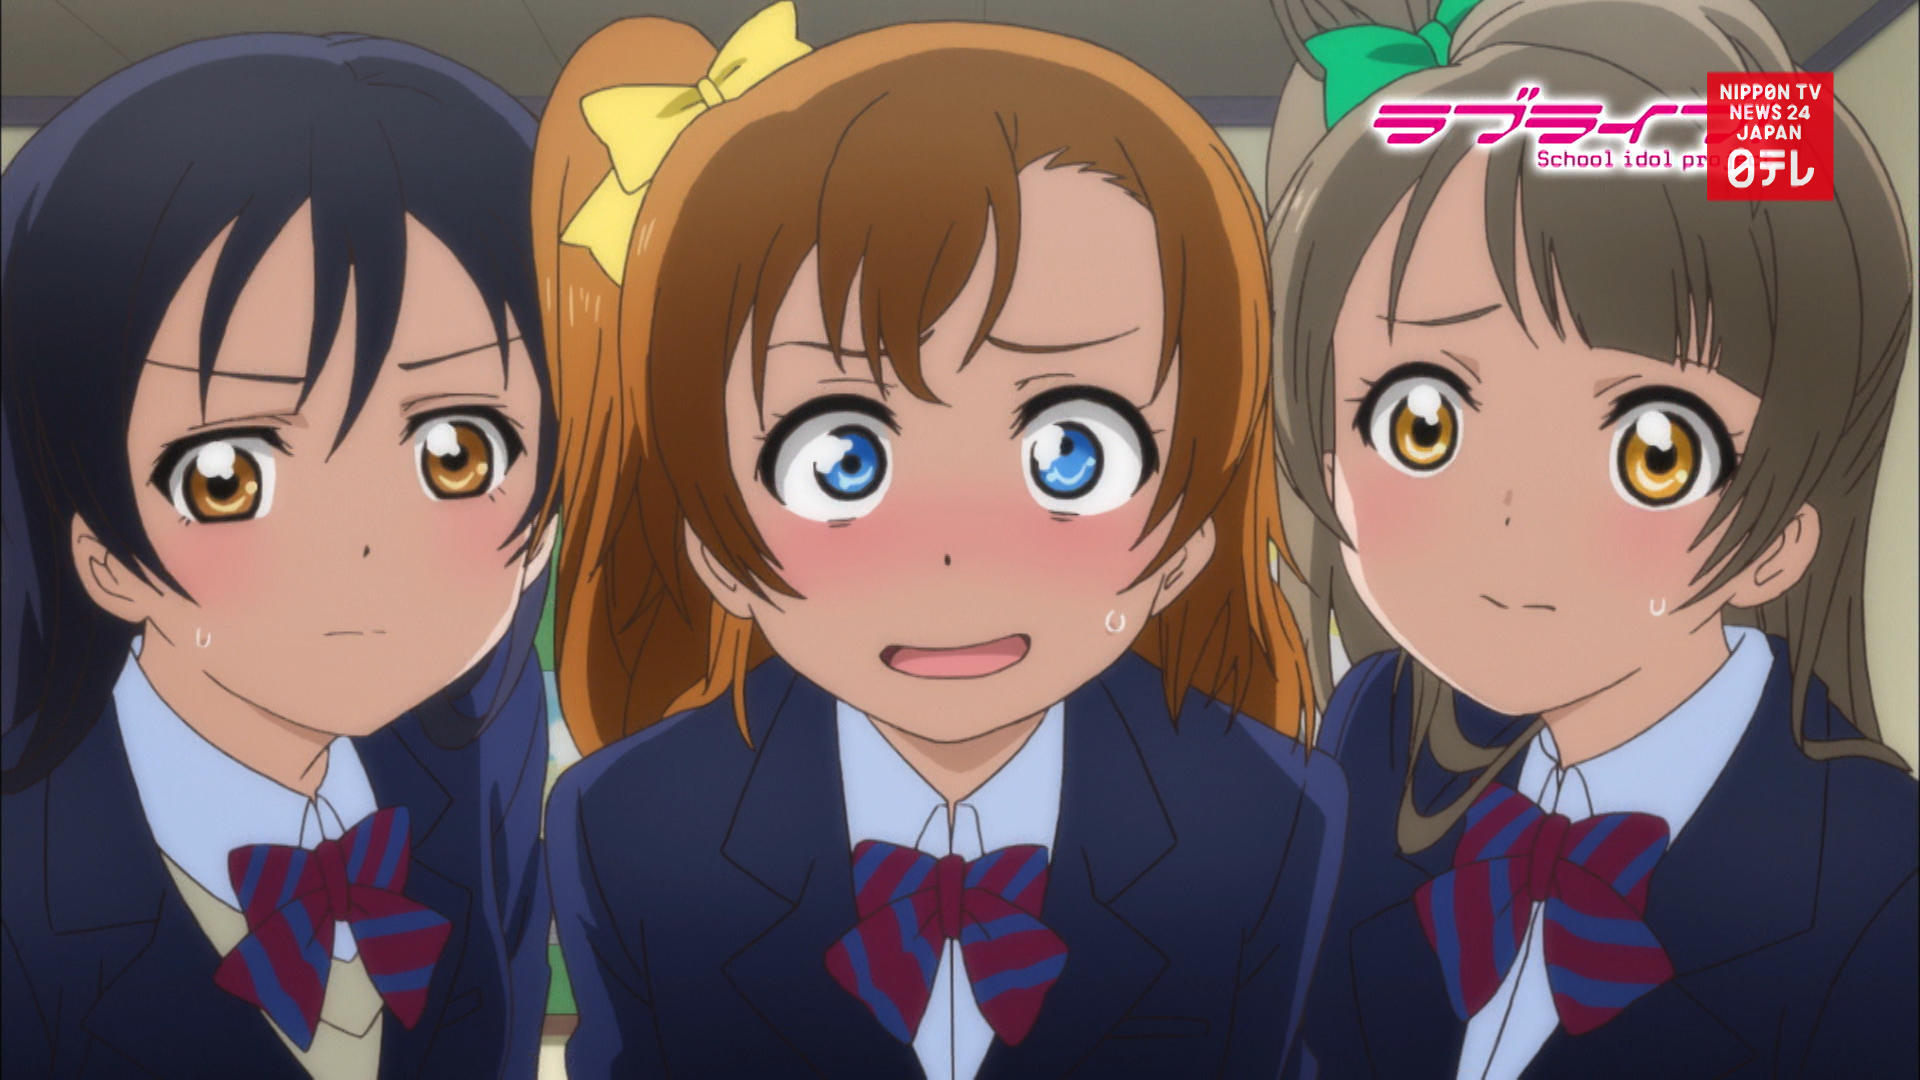 Anime's sacred sites: Love Live!